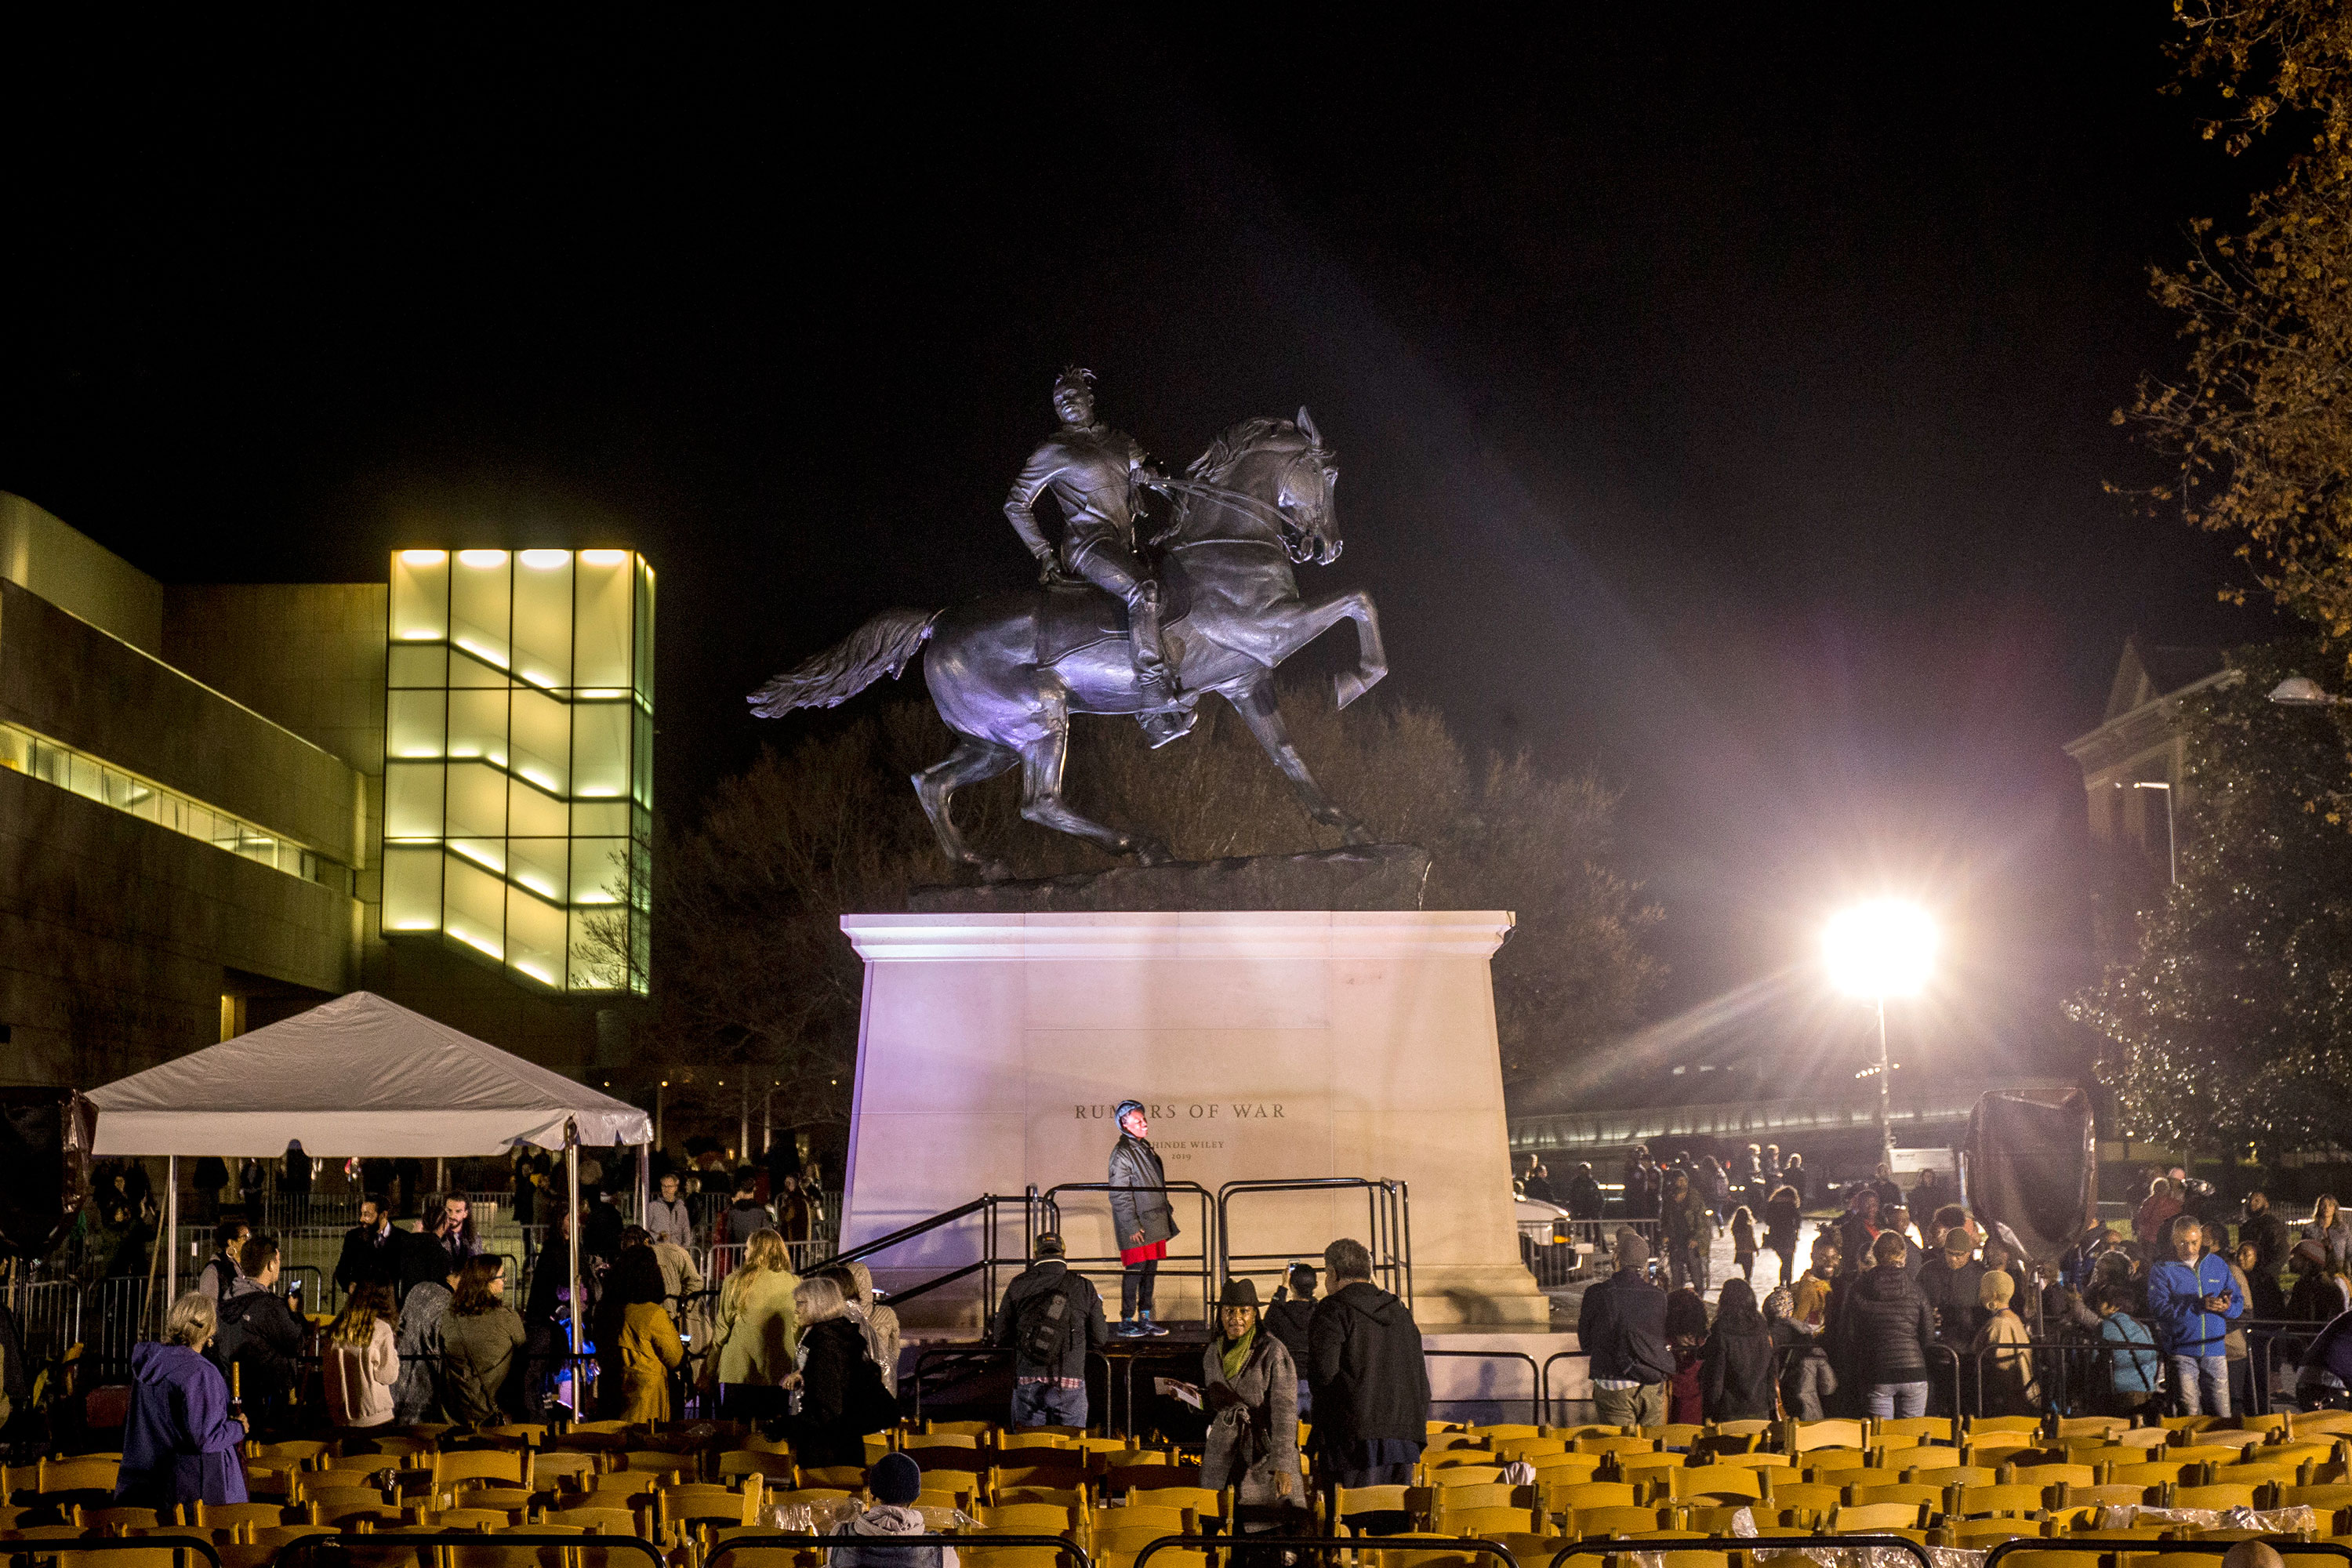 A statue of a black man on a horse has a new home in the heart of the Confederacy